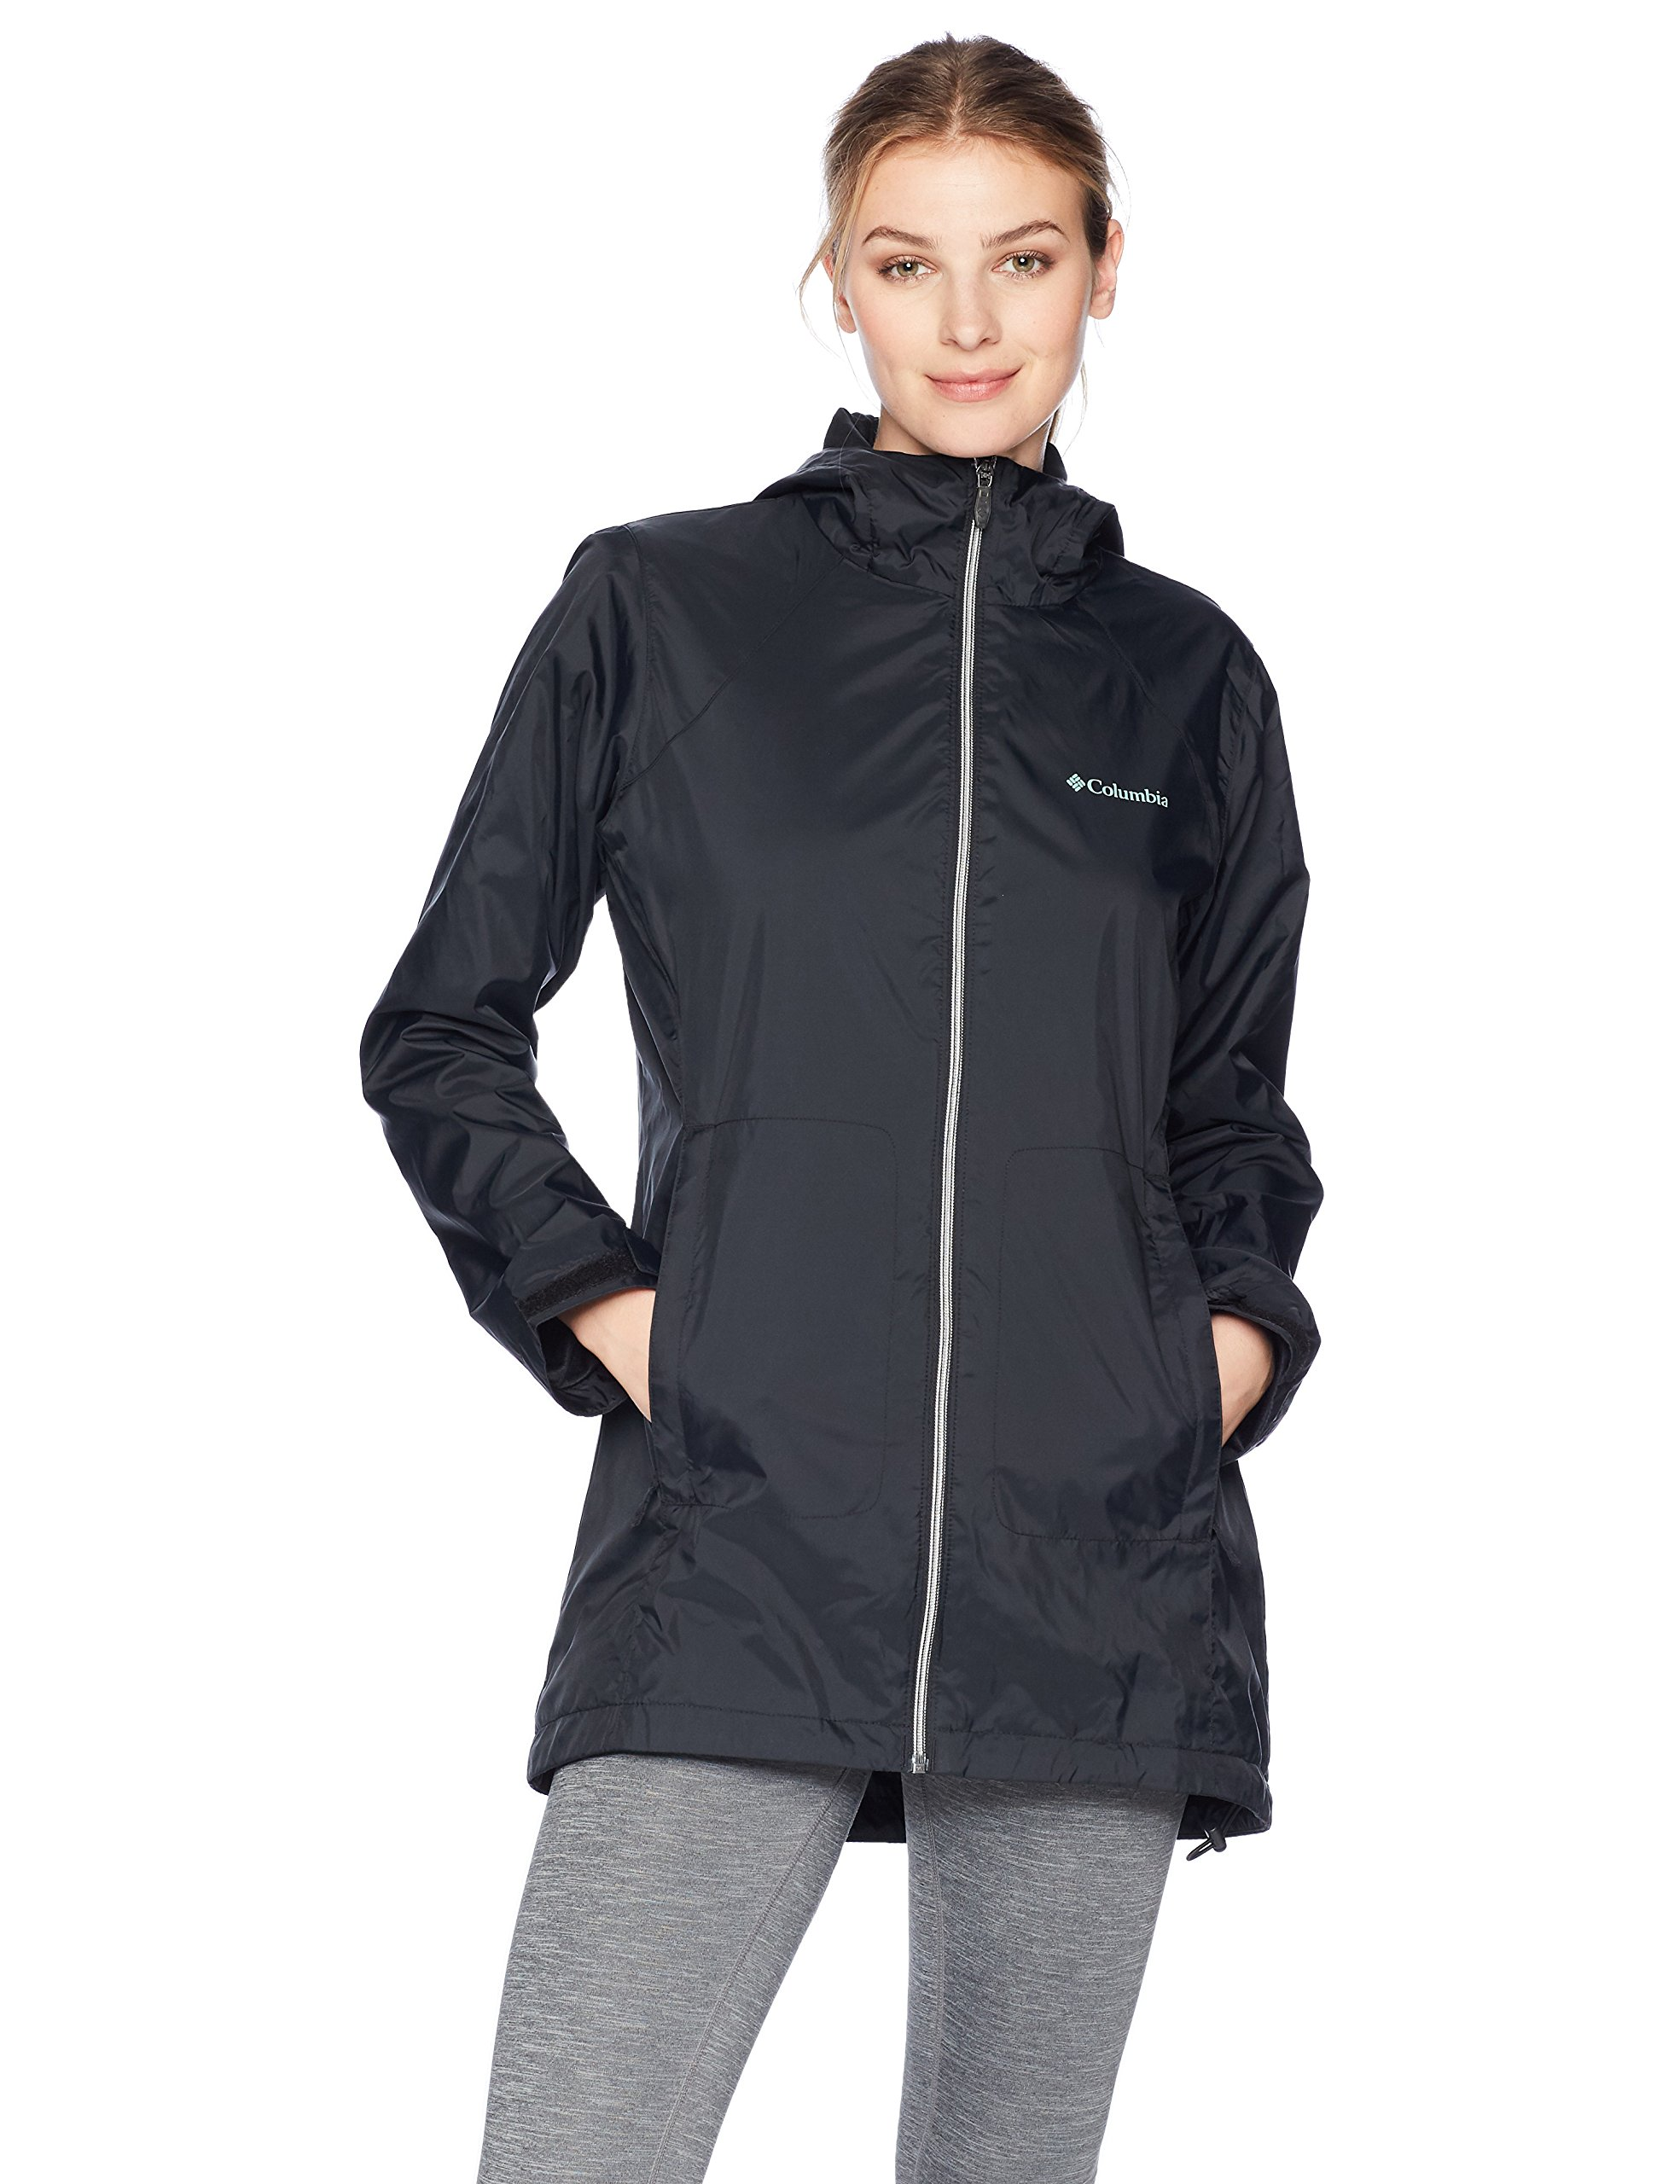 Columbia Women's Switchback Lined Long Jacket, Black, X-Small